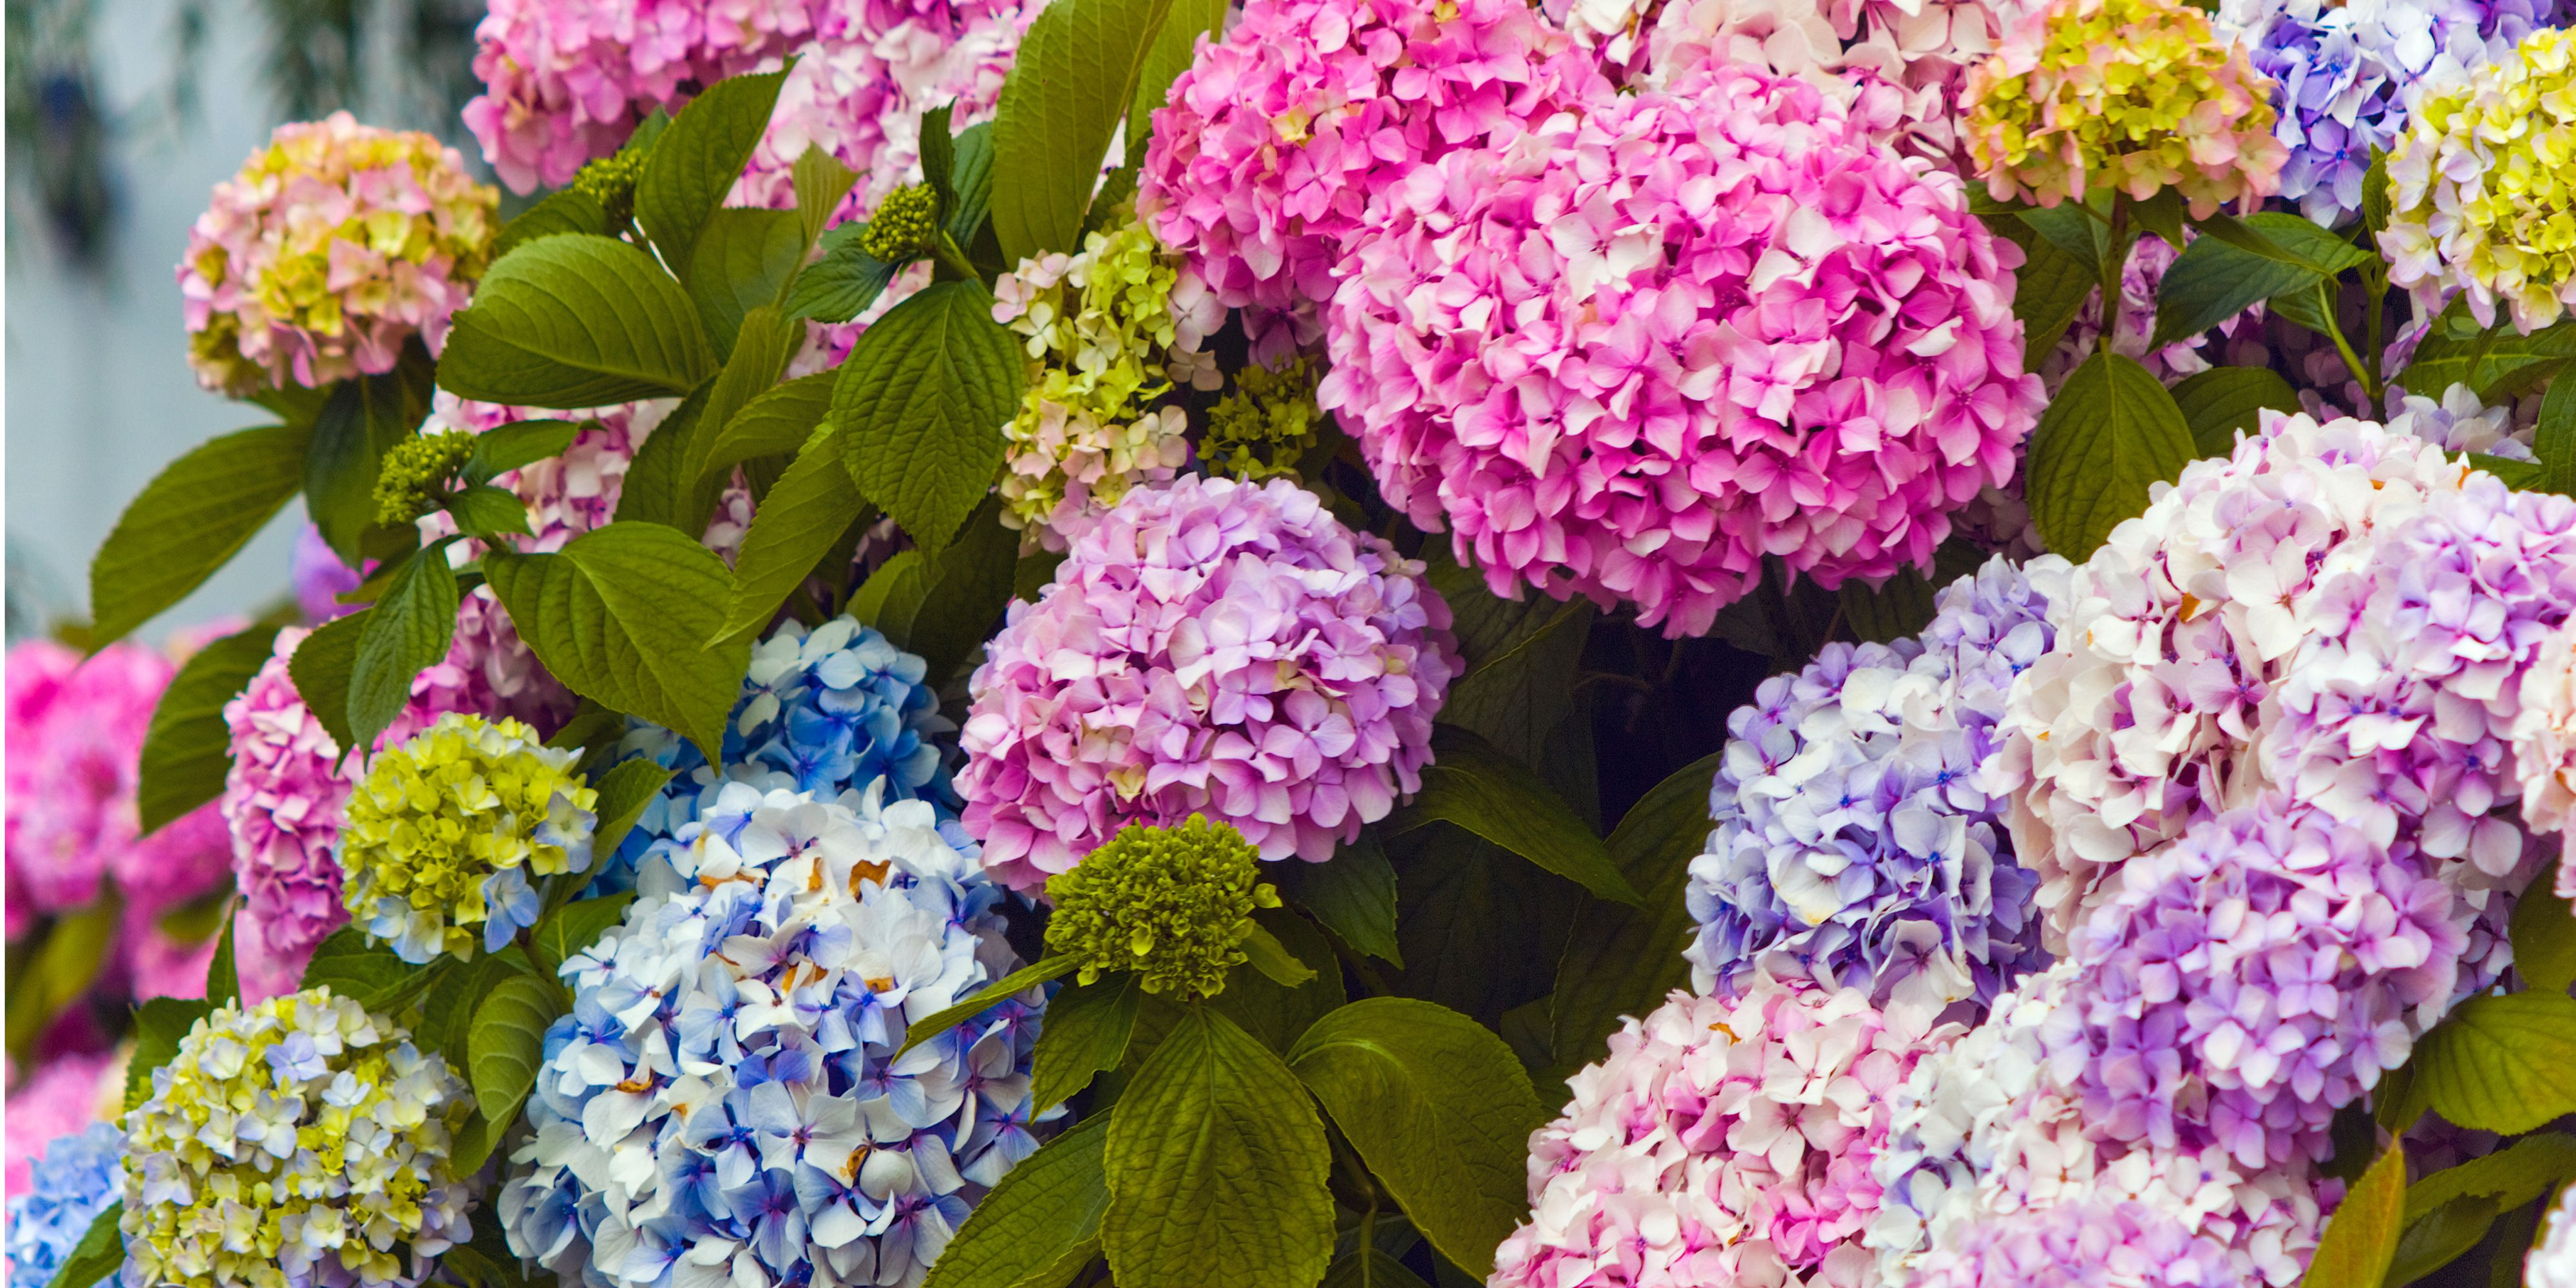 13 Facts About Hydrangea Things Every Hydrangea Fan Needs To Know